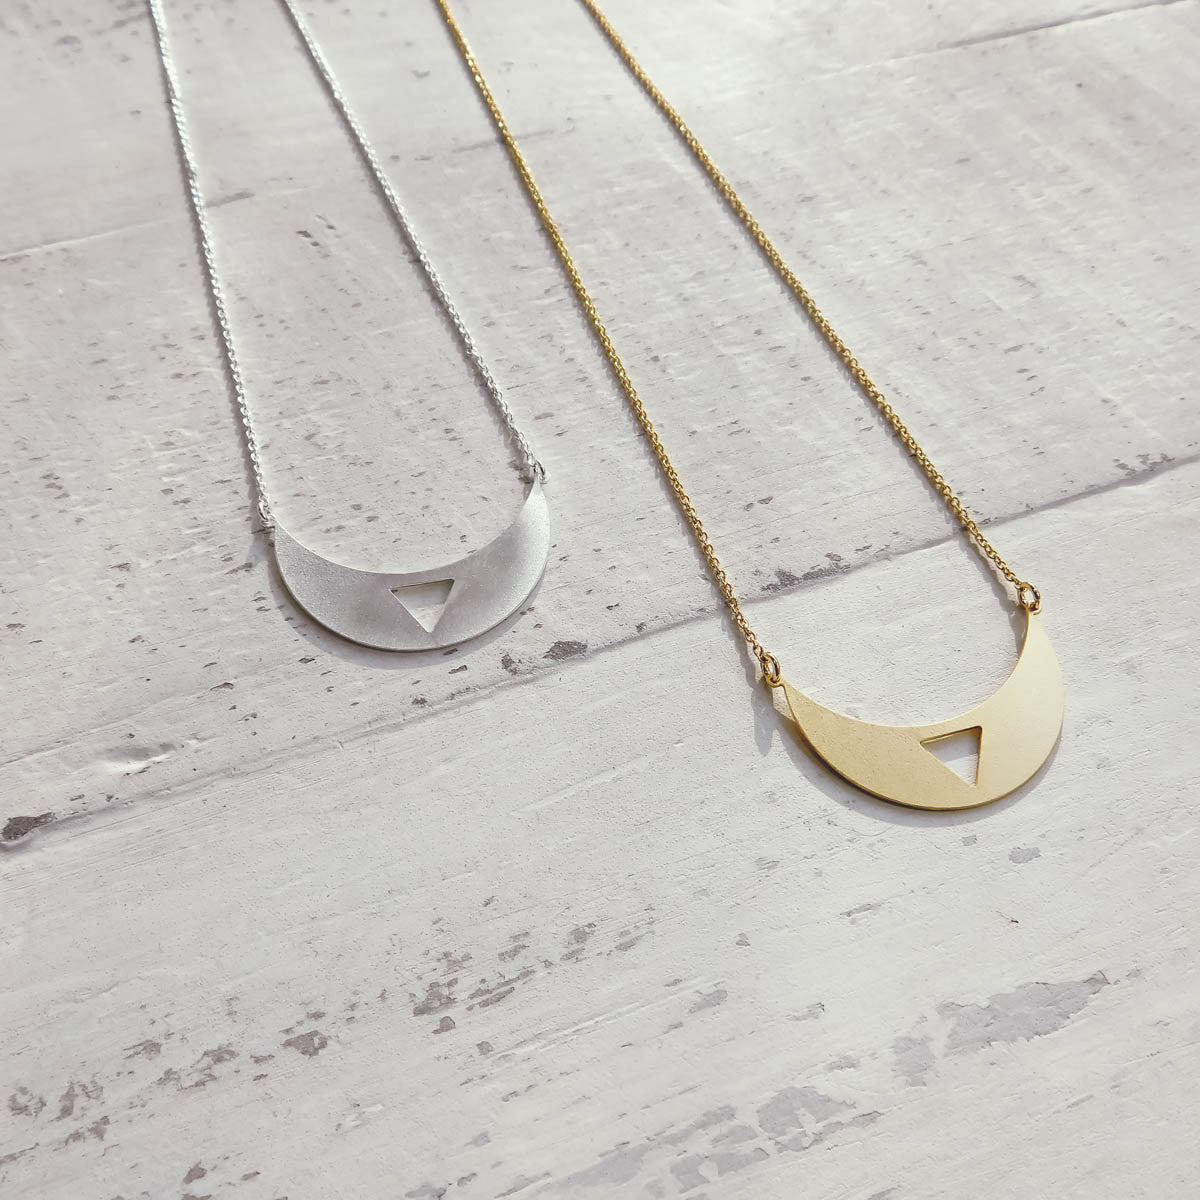 Celestial Lunar Necklace